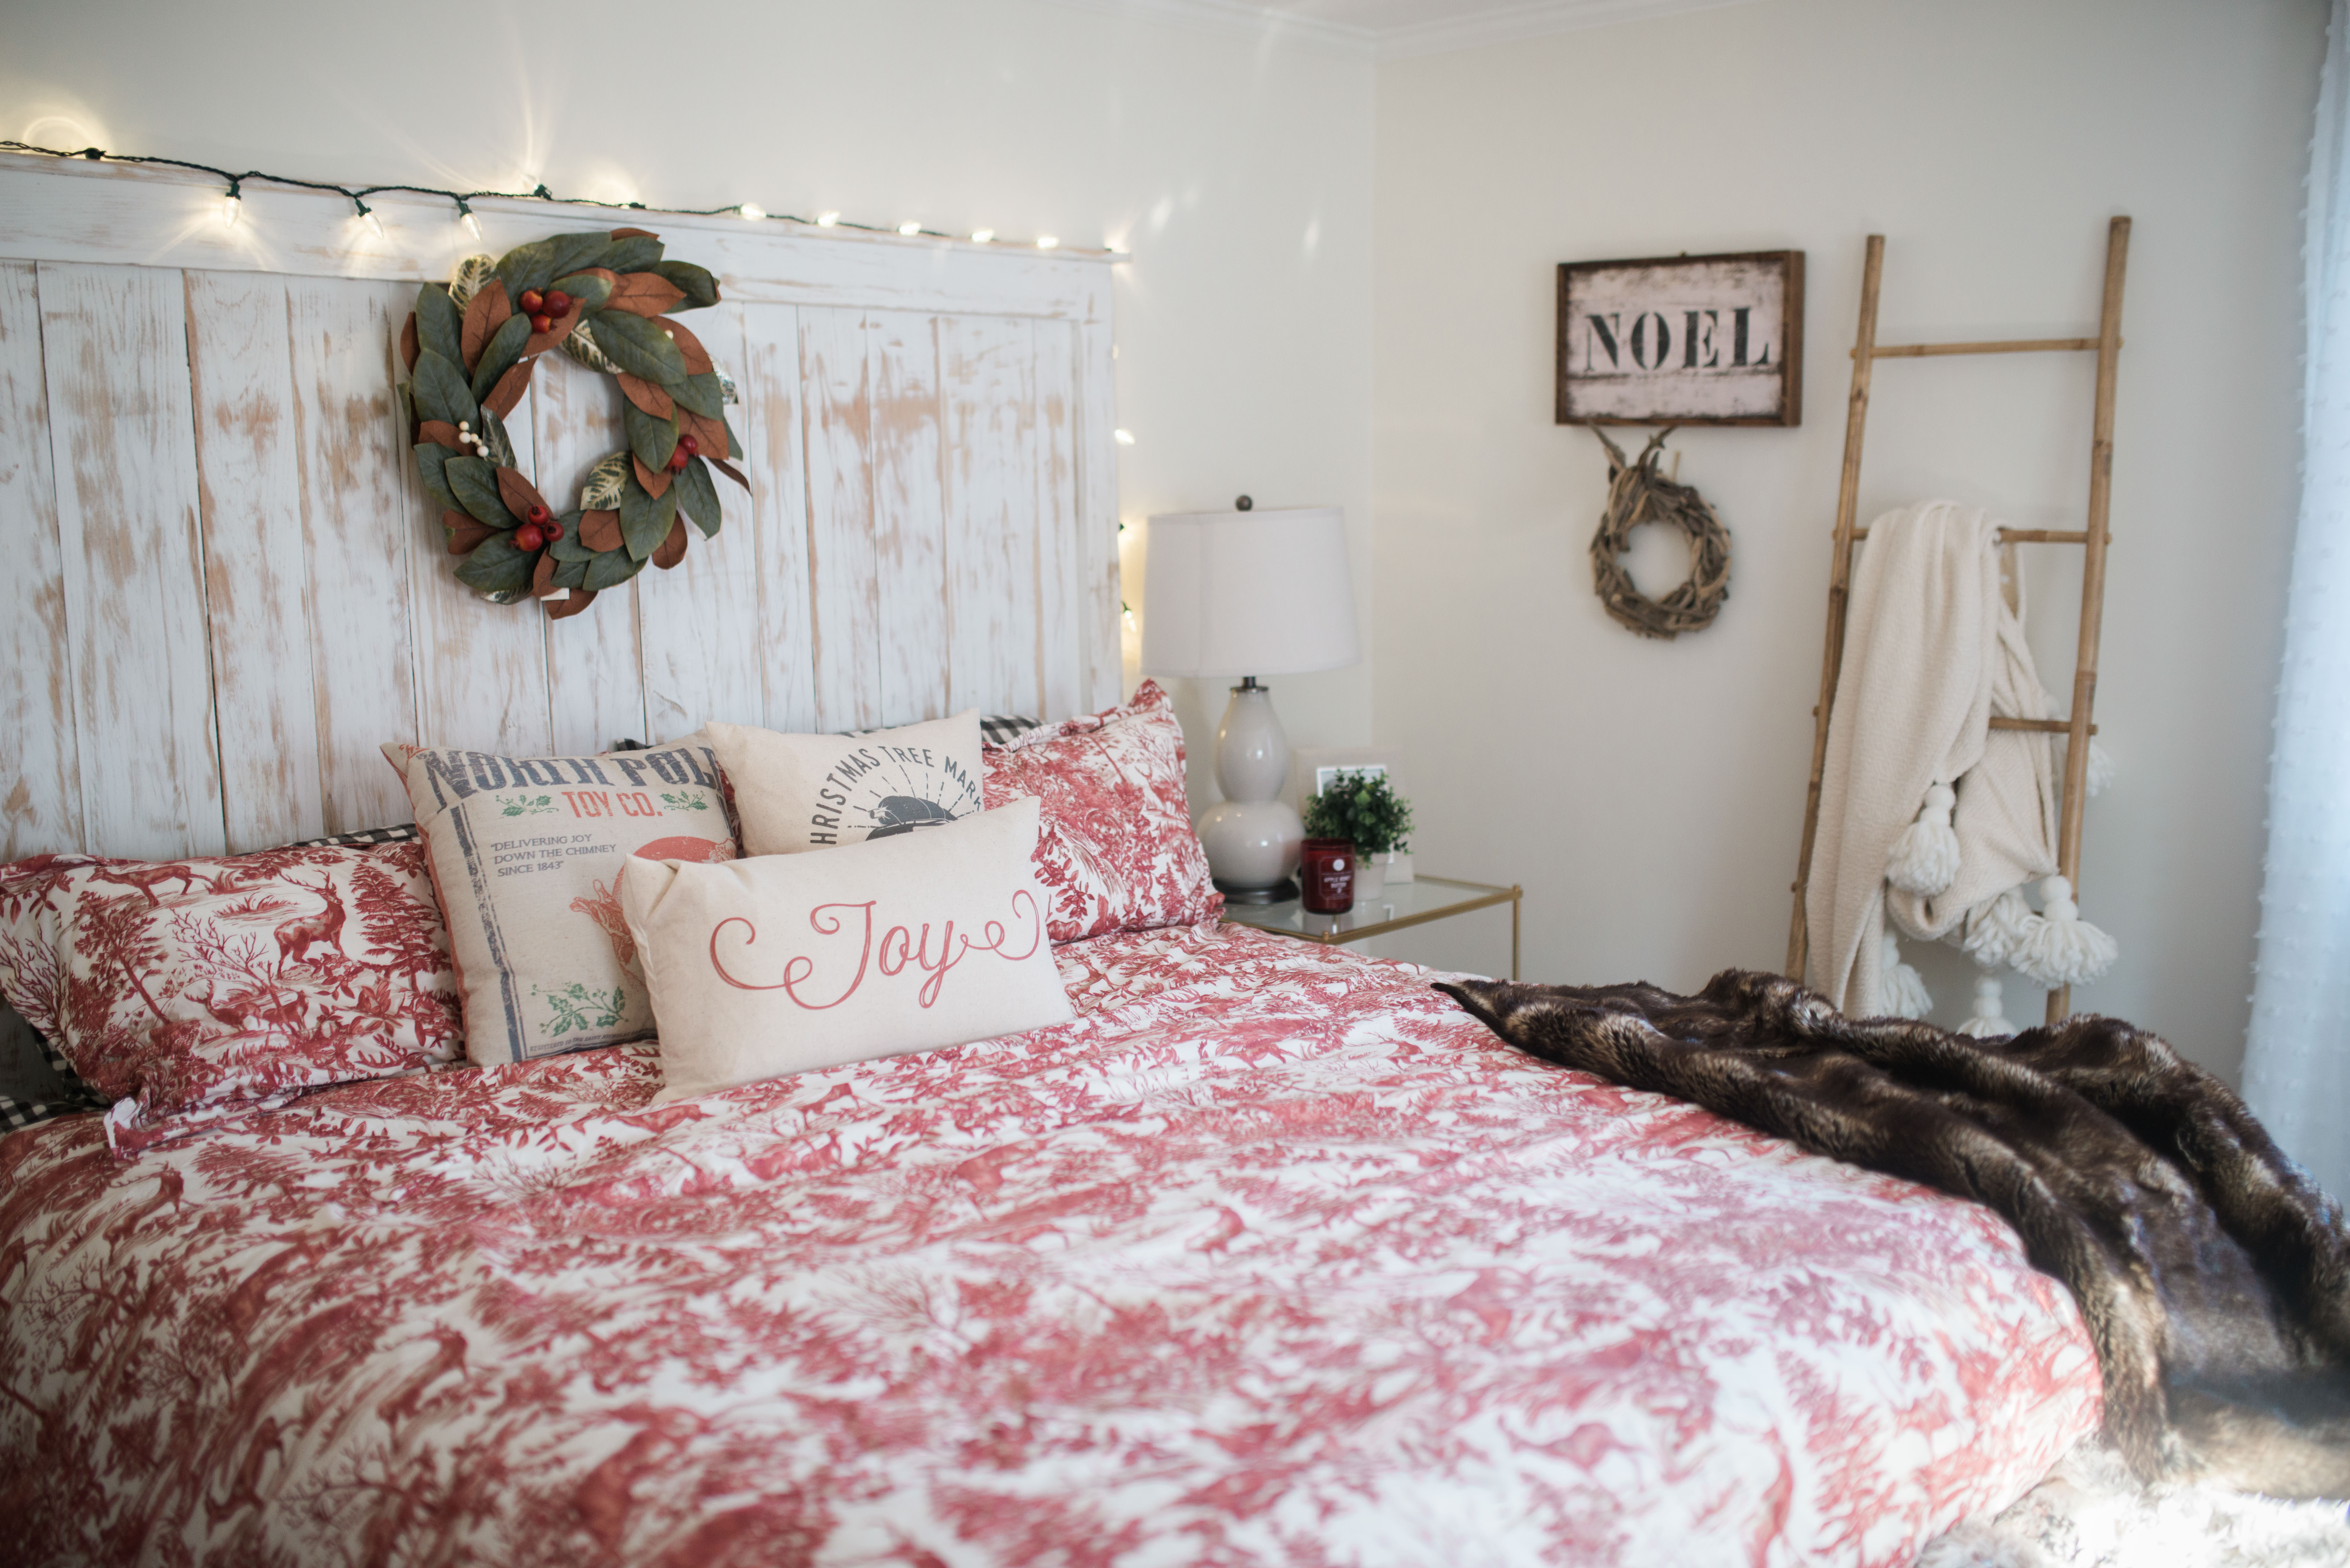 Best ideas about Bedroom Wall Decor . Save or Pin Our Bedroom holiday decor Bedroom Wall Decorations Now.